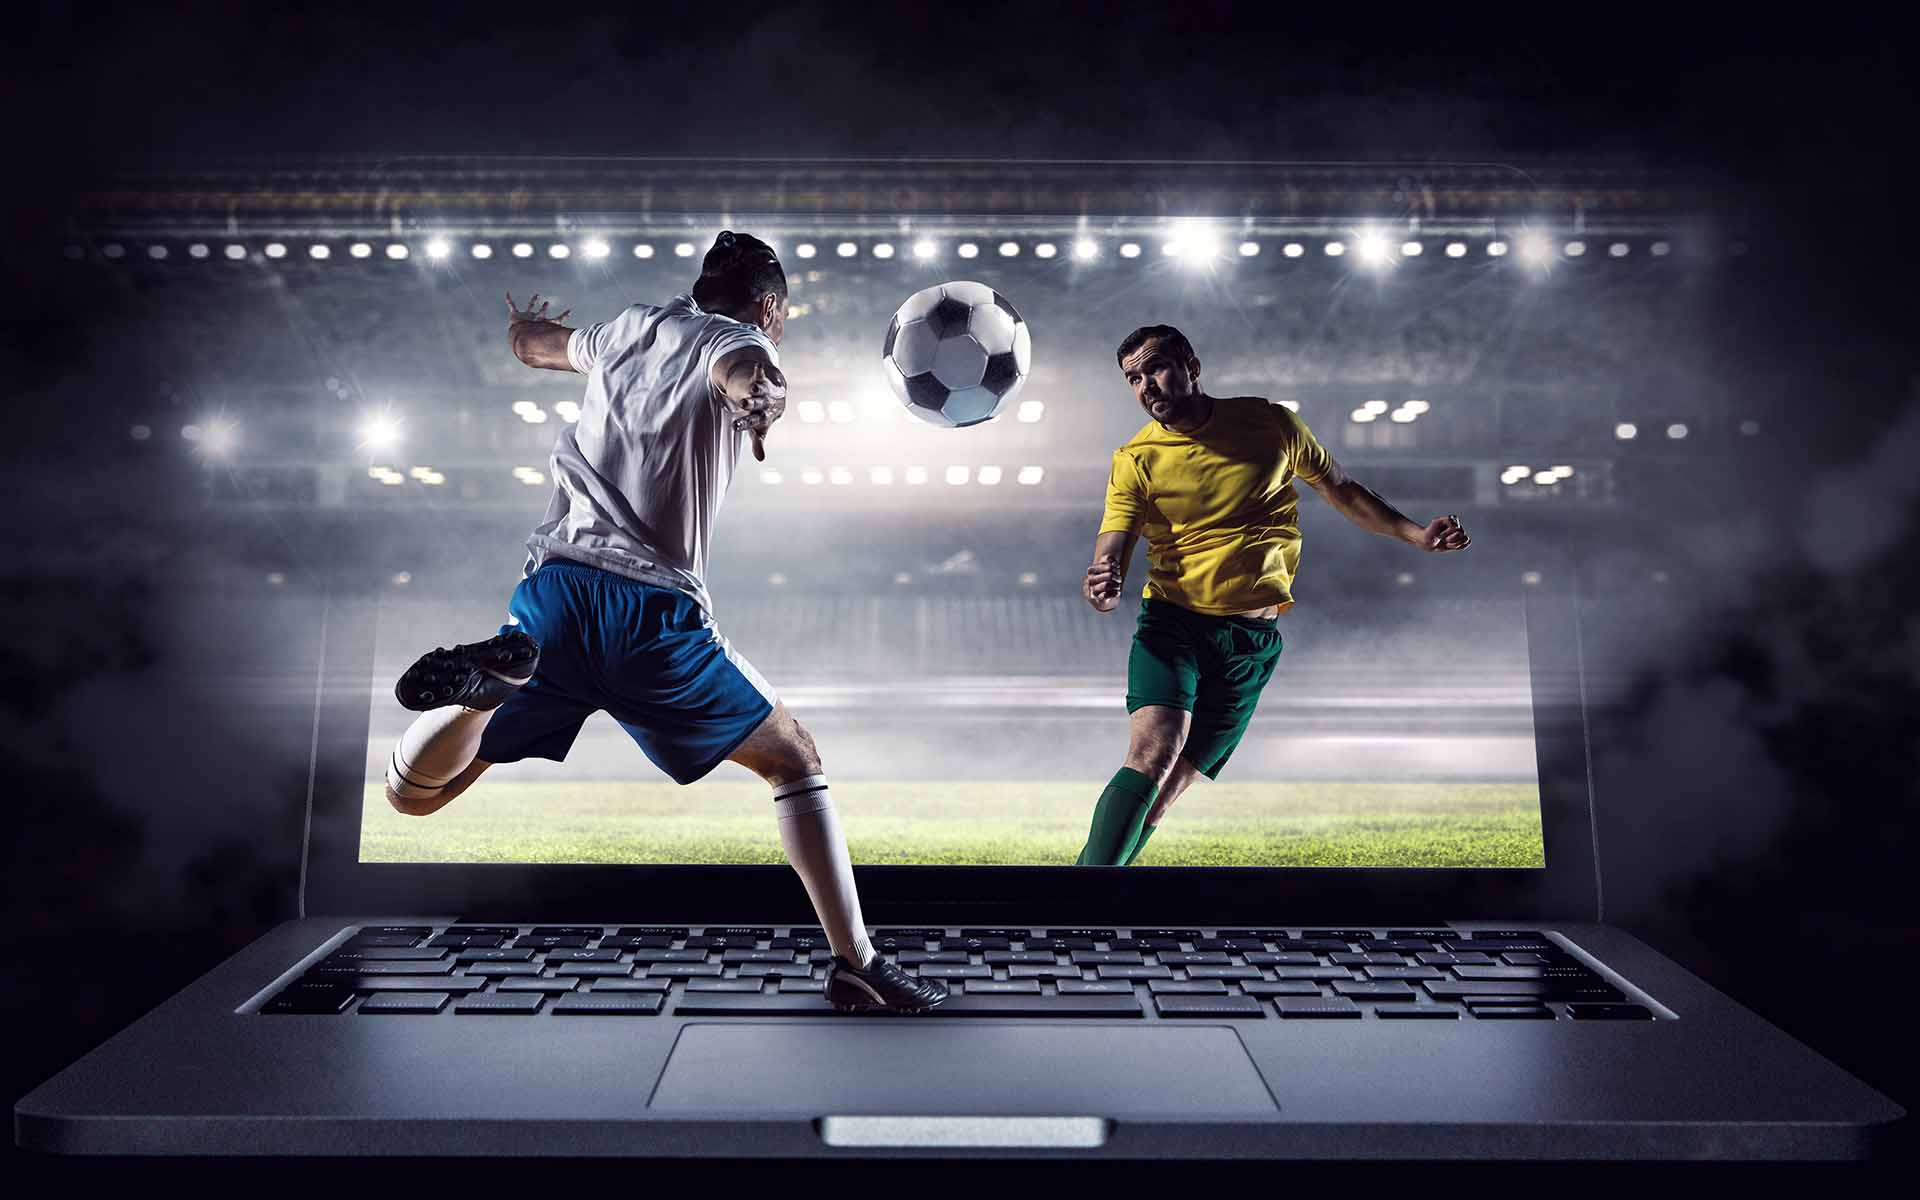 What sport is better to bet on?